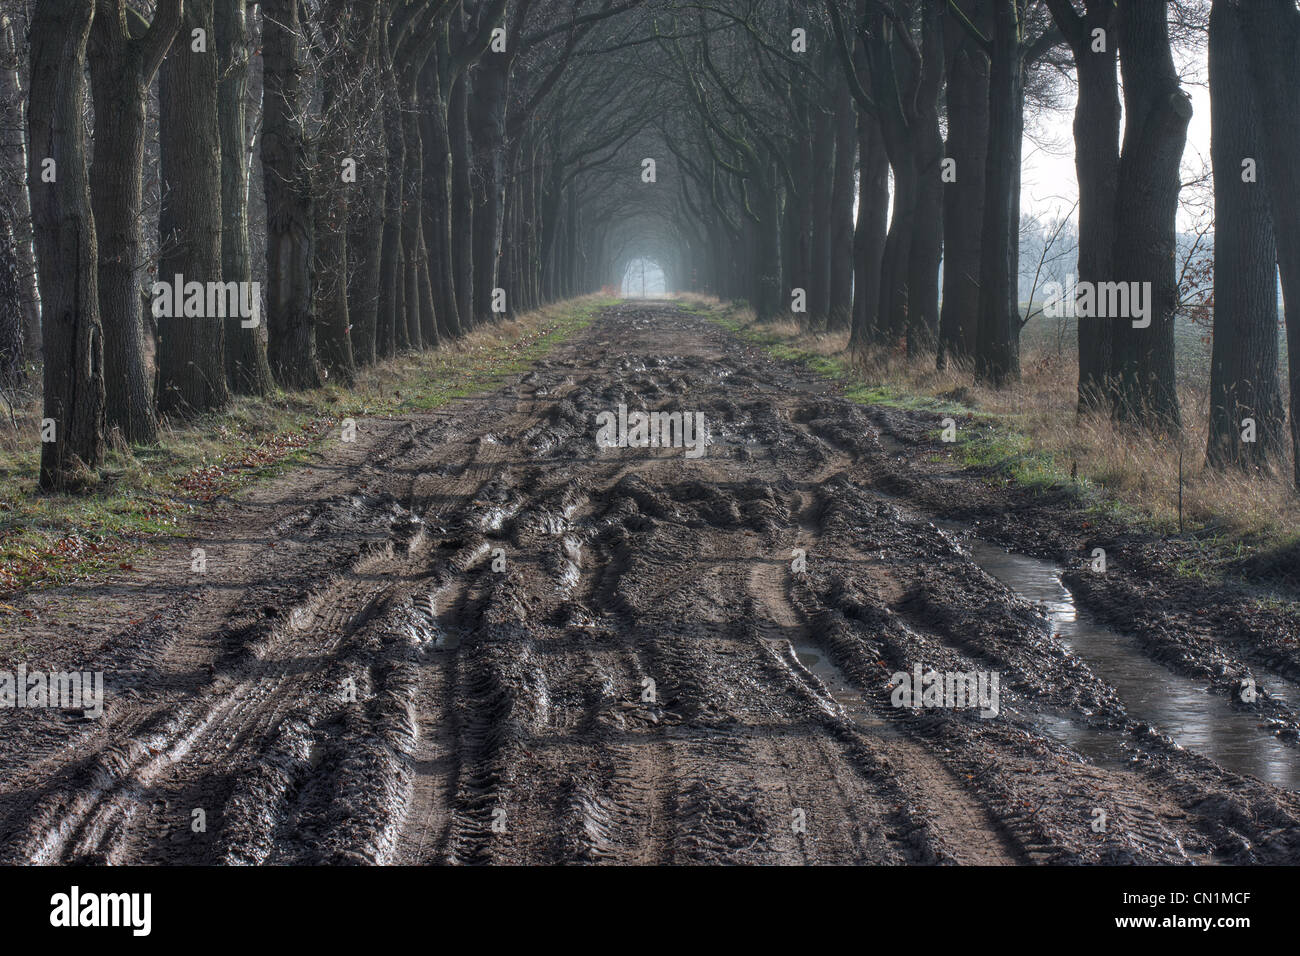 Bad road conditions: a muddy countryroad with car tracks in autumn. - Stock Image